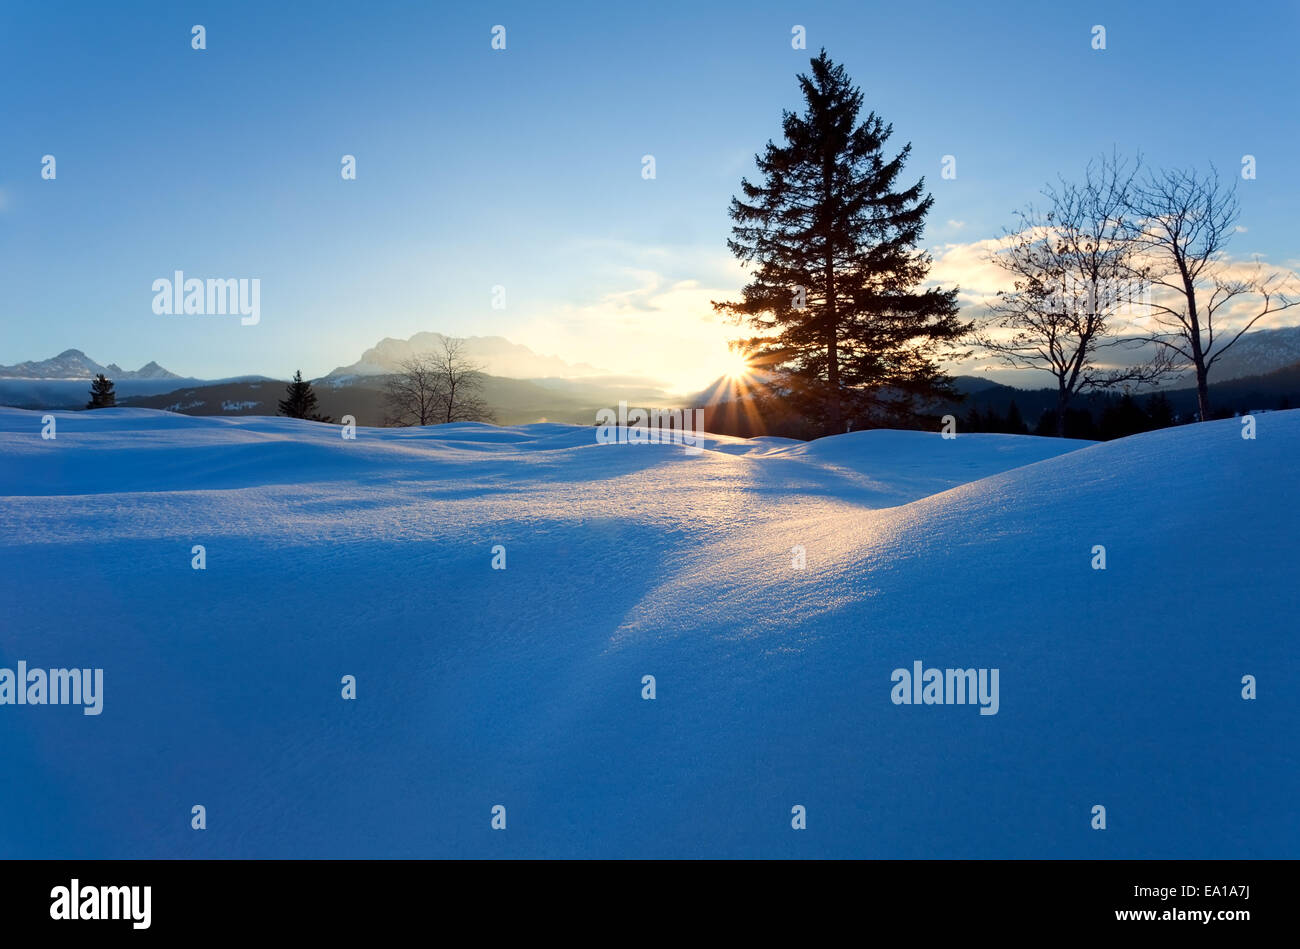 sunset over snow hills in Alps, Bavaria, Germany - Stock Image